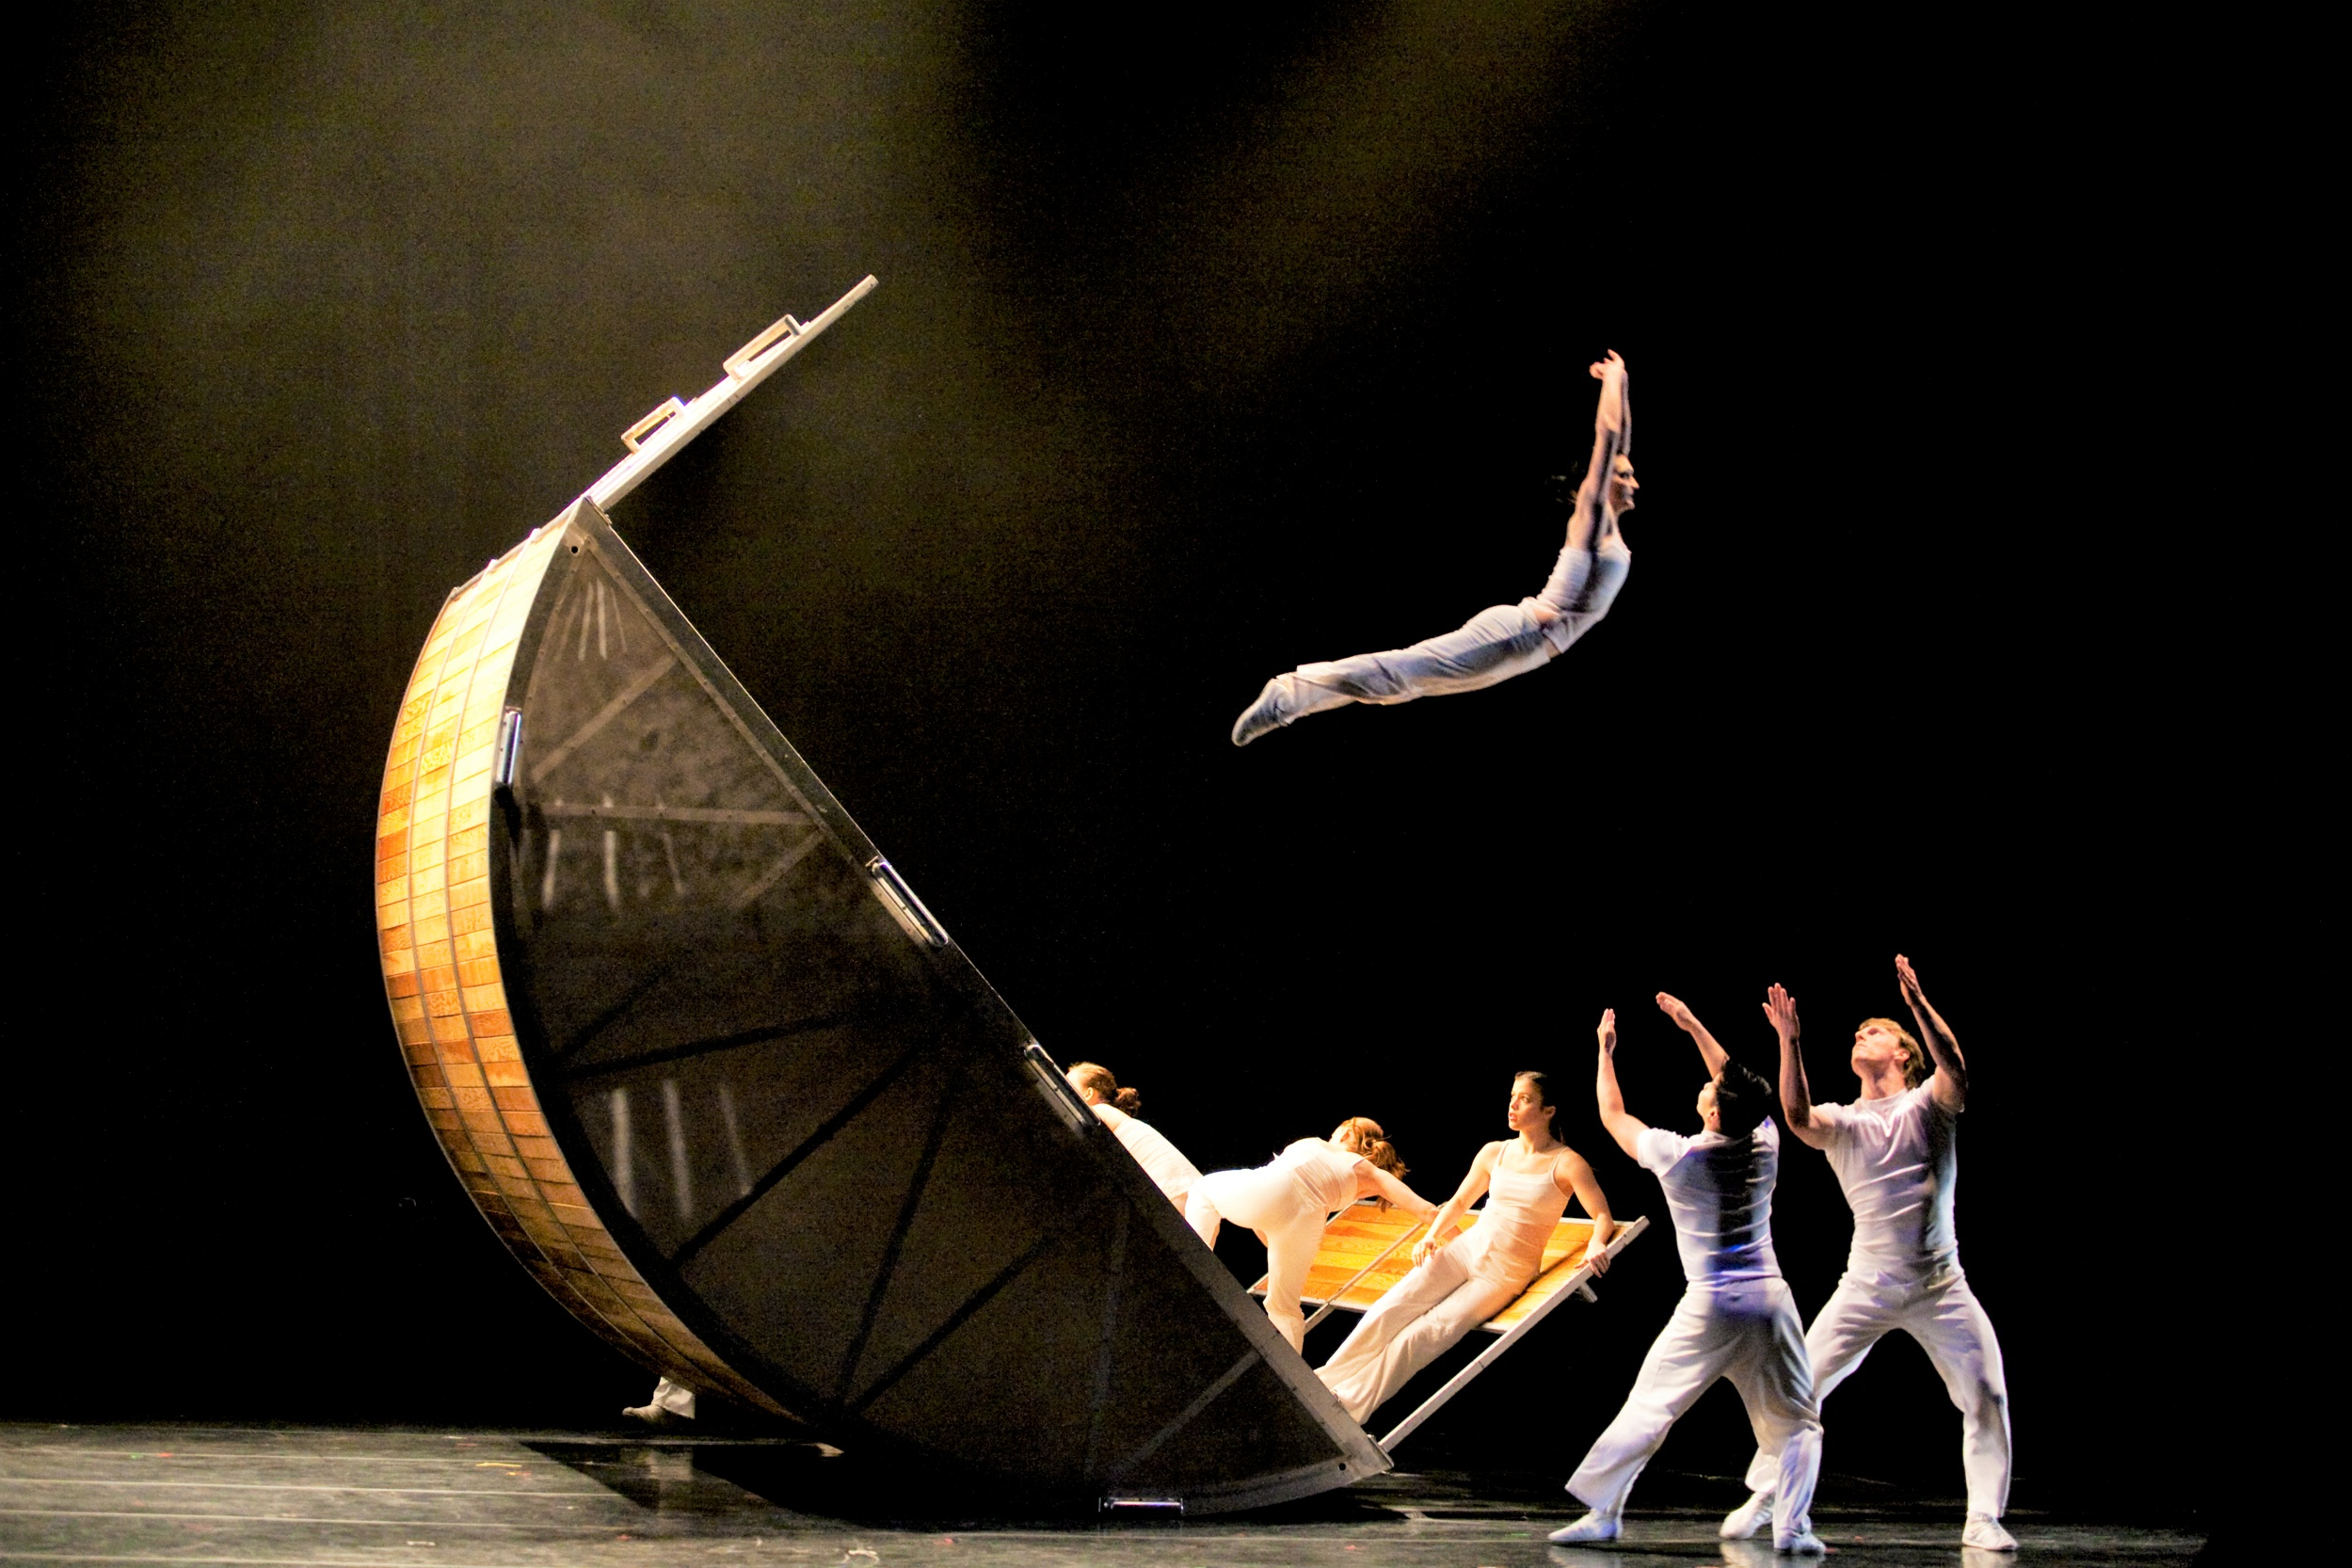 LA-based, Diavolo, will perform on the same stage as Orlando Ballet, adjacent to City Hall.